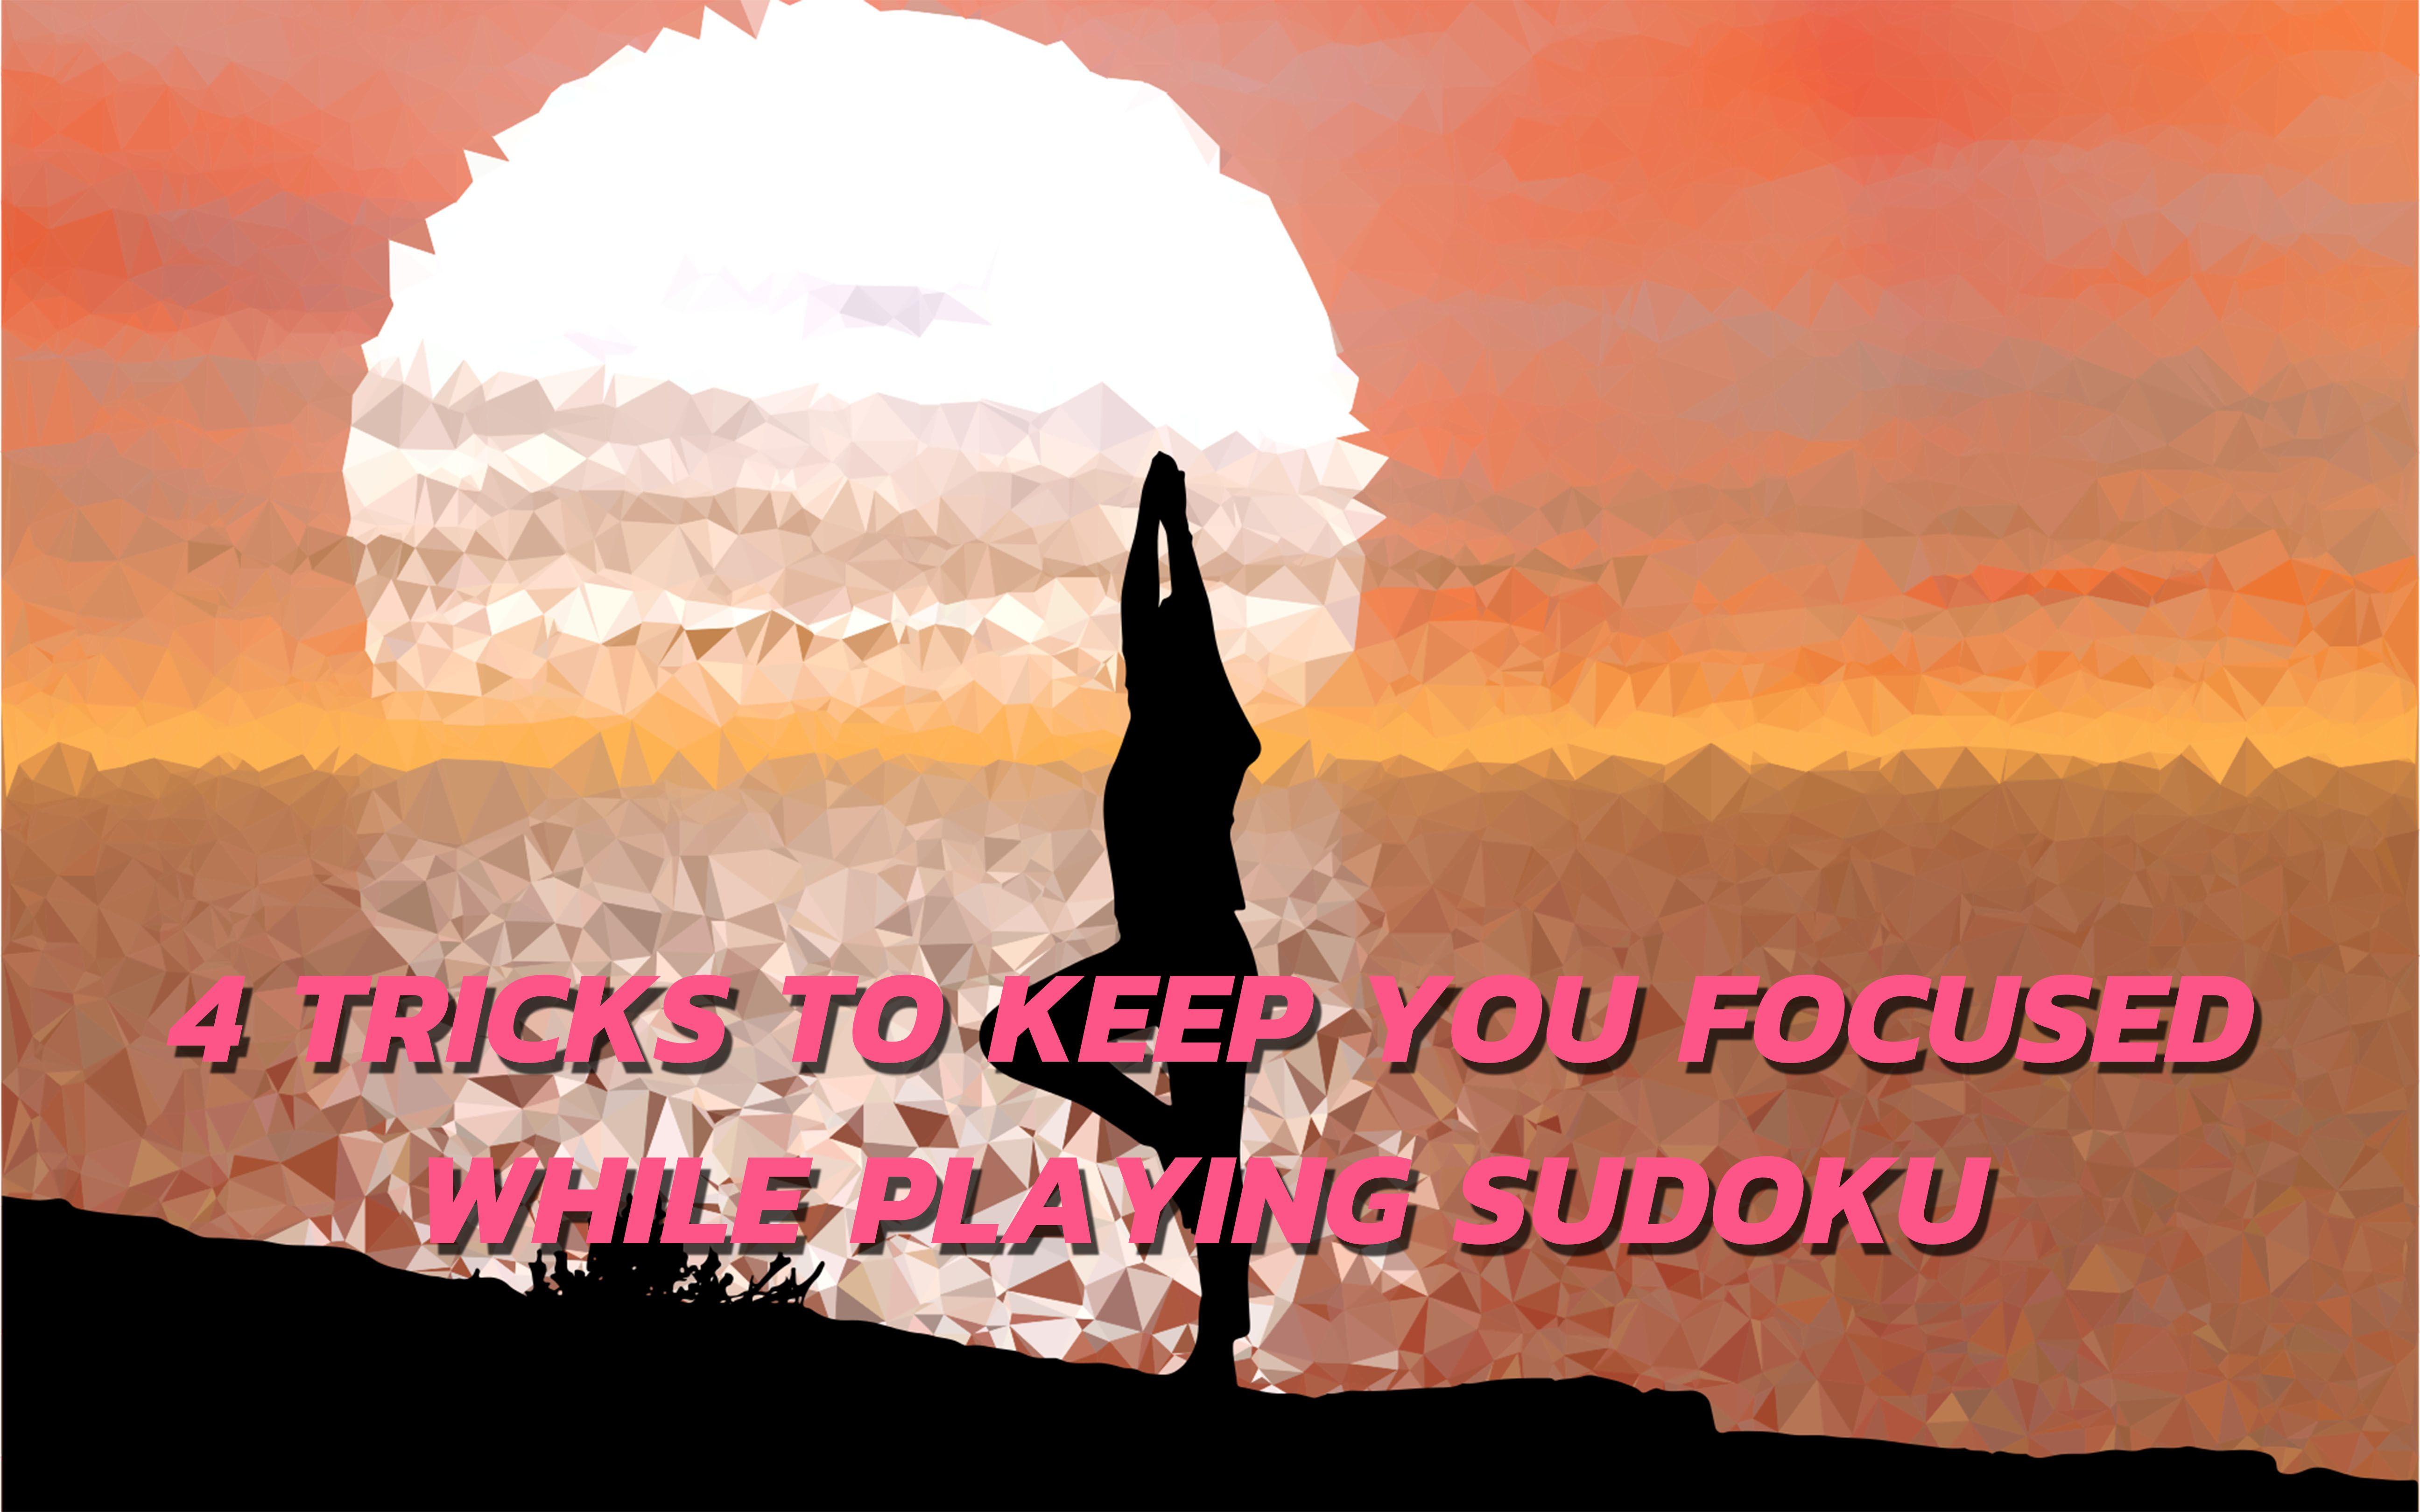 4 Tricks To Keep You Focused While Playing Sudoku HEADER